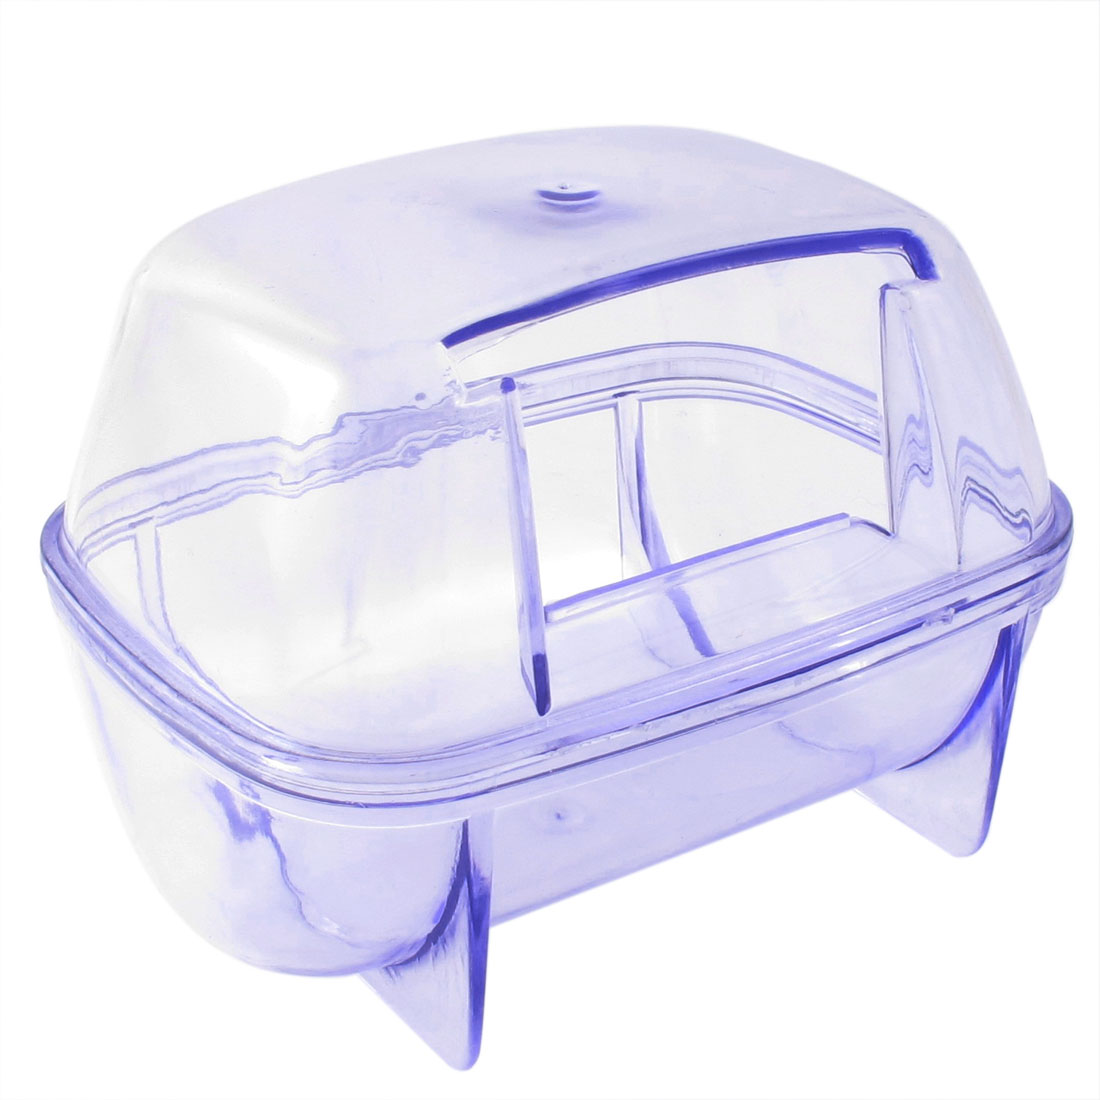 Detachable 4.5cm Door Hole Pet Gerbil Hamster House Cage Habitat Clear Blue